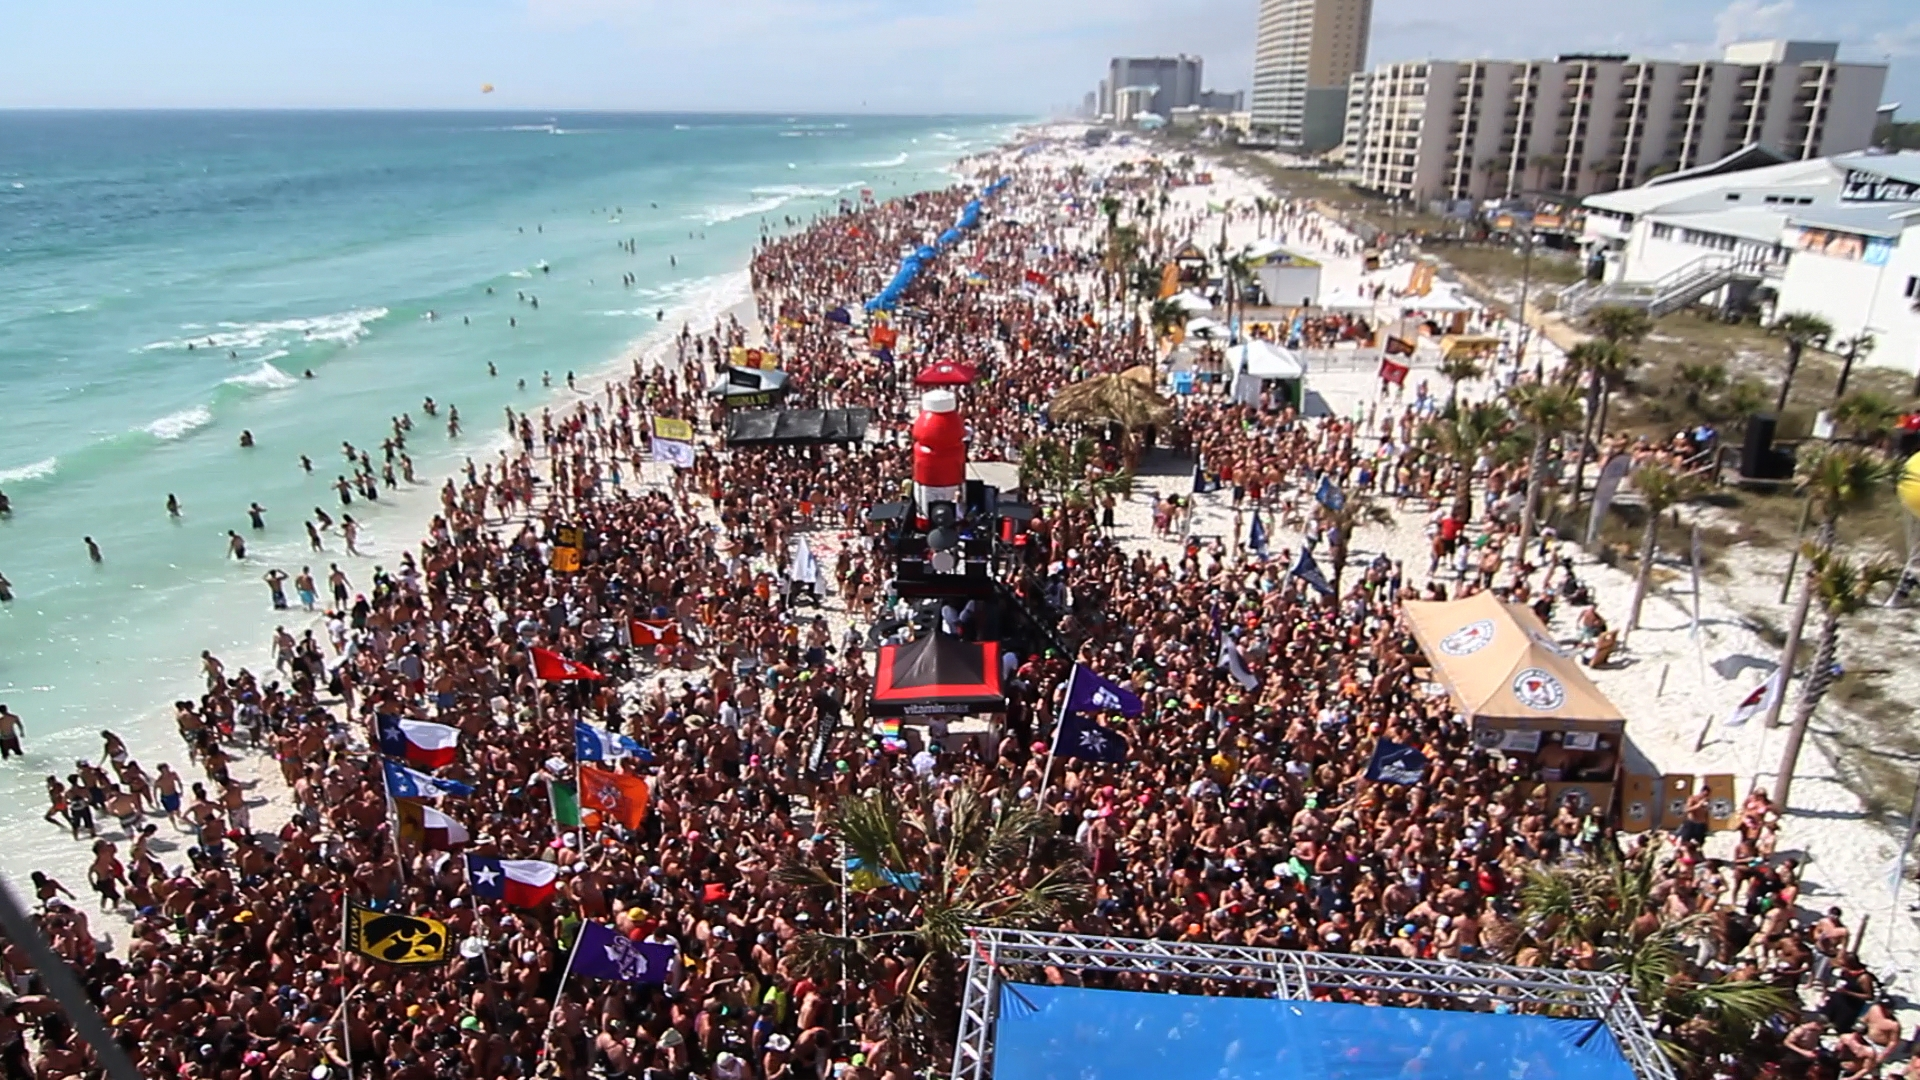 College Students In Panama City Beach For Spring Break